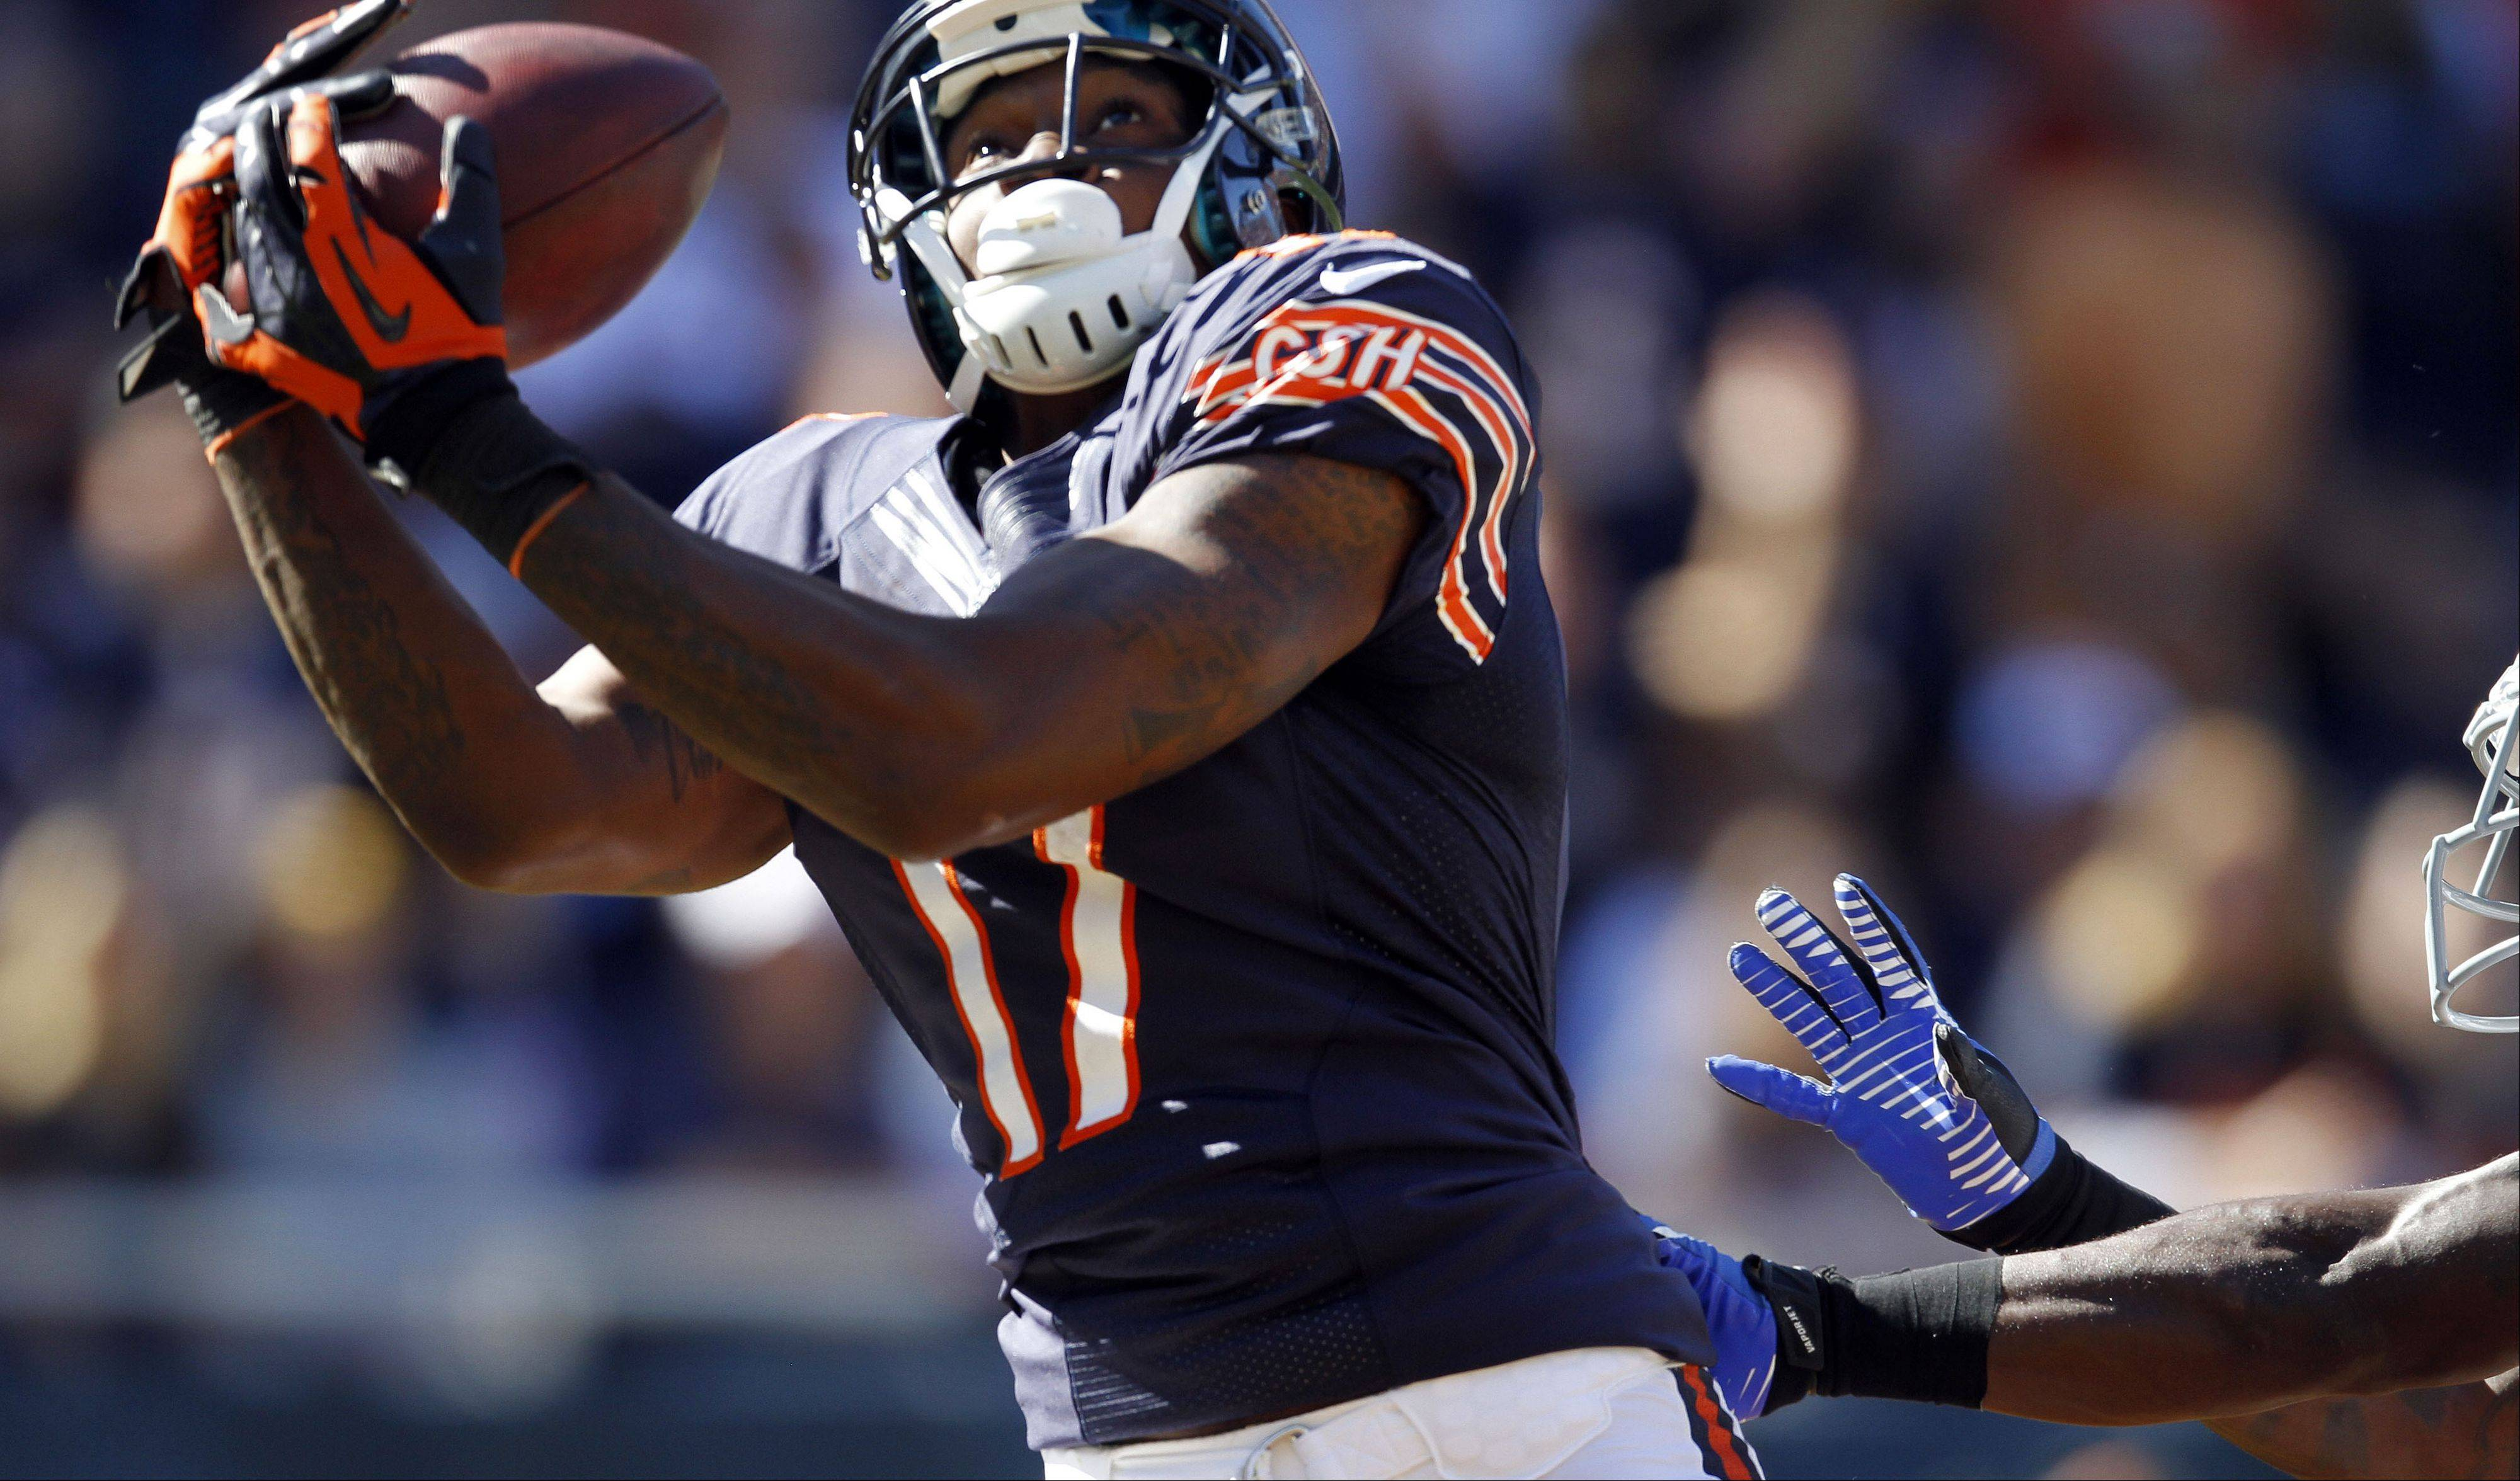 Steve Lundy/slundy@dailyherald.com Chicago Bears wide receiver Alshon Jeffery makes a touchdown catch in the 4th quarter during the Bears season opener against the Indianapolis Colts at Soldier Field in Chicago. The Bears won 41-21.